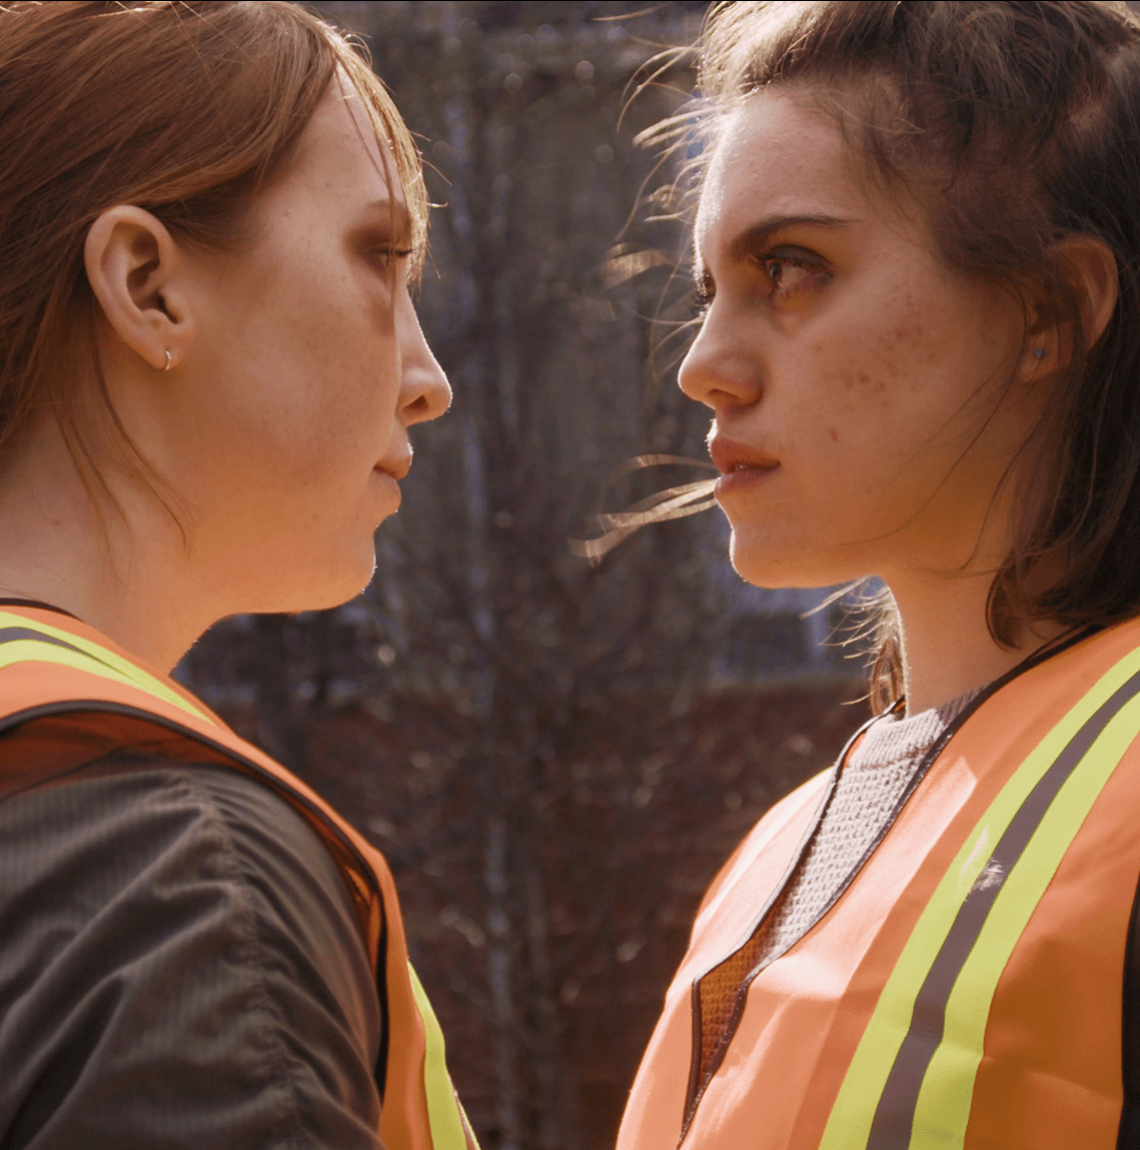 two young women wearing orange safety vests look each other in the eye while standing outside in the sun